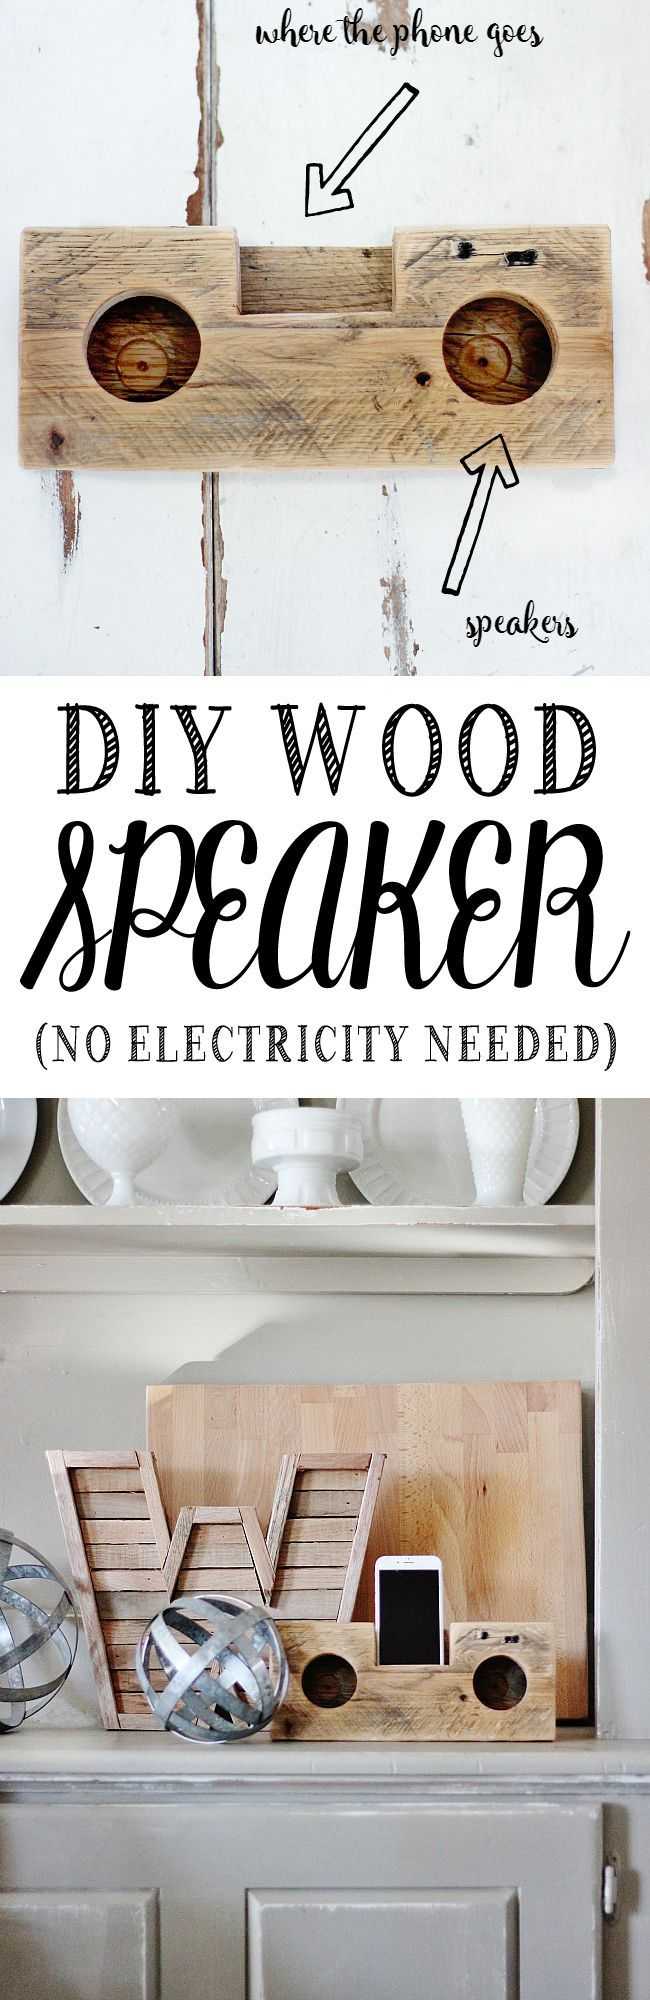 DIY Wood Speaker (No Electricity Needed